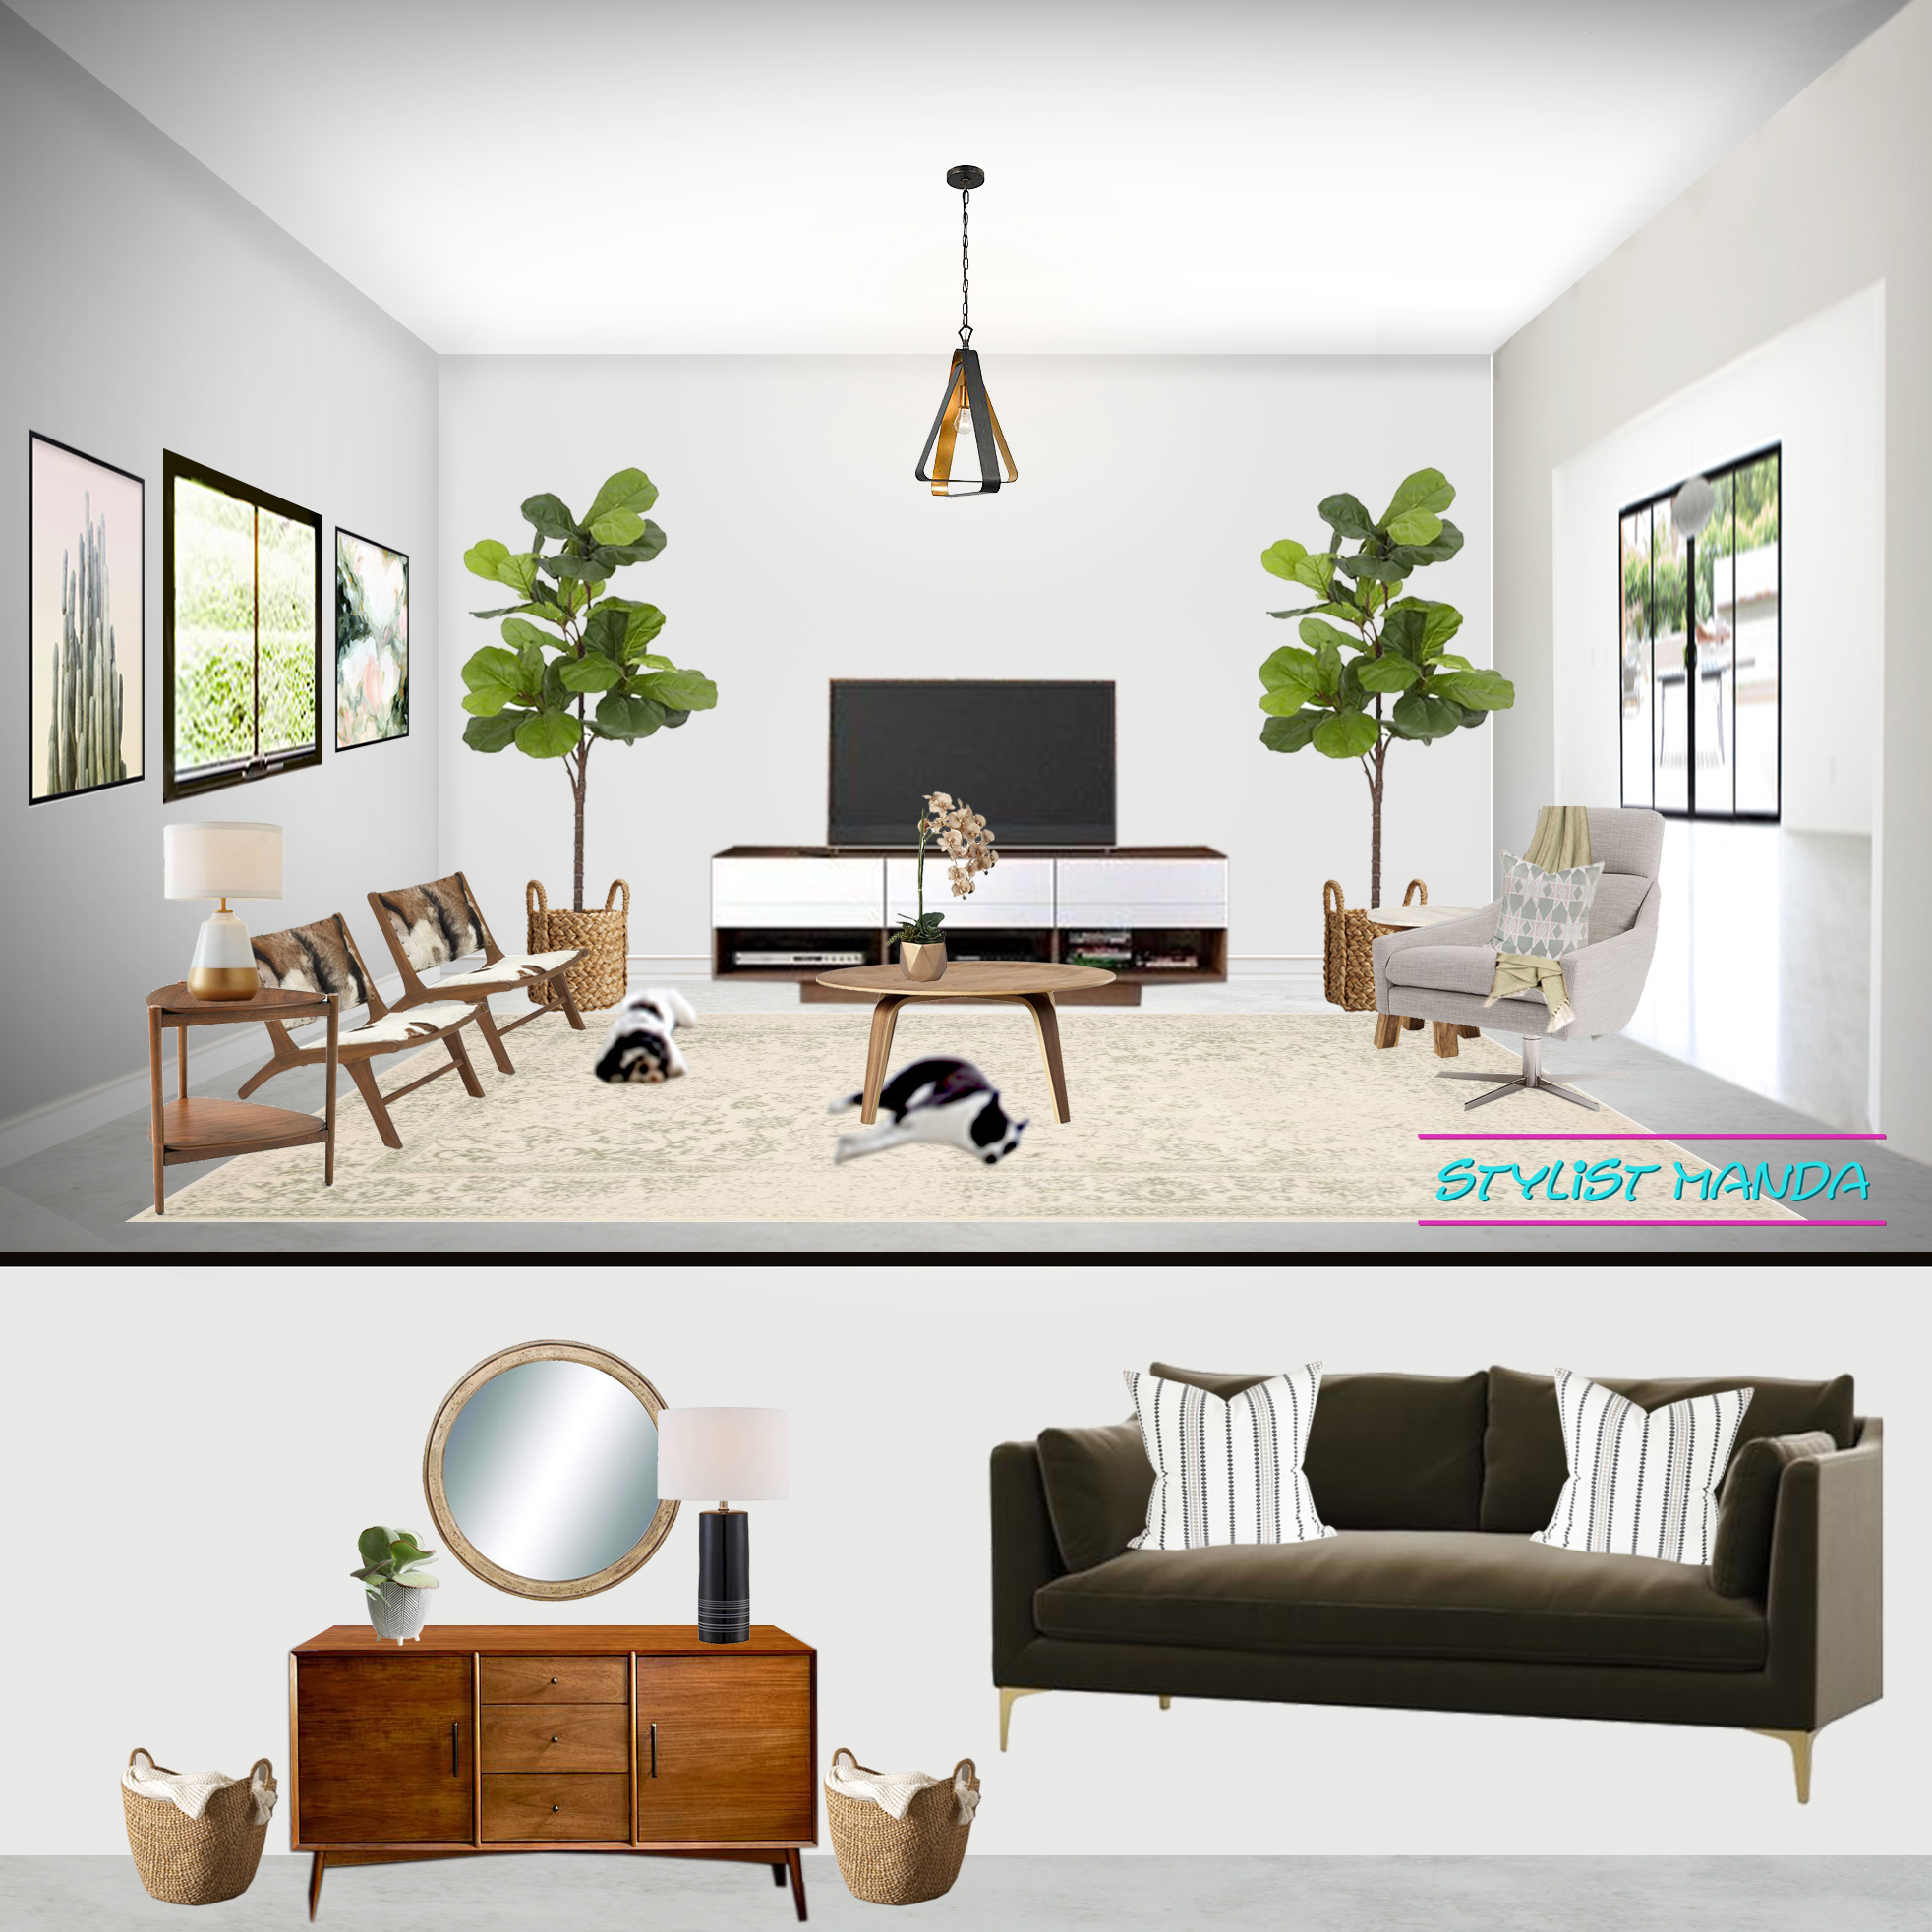 Open and airy living room with a relaxed Cali vibe and boho accessories #edesign